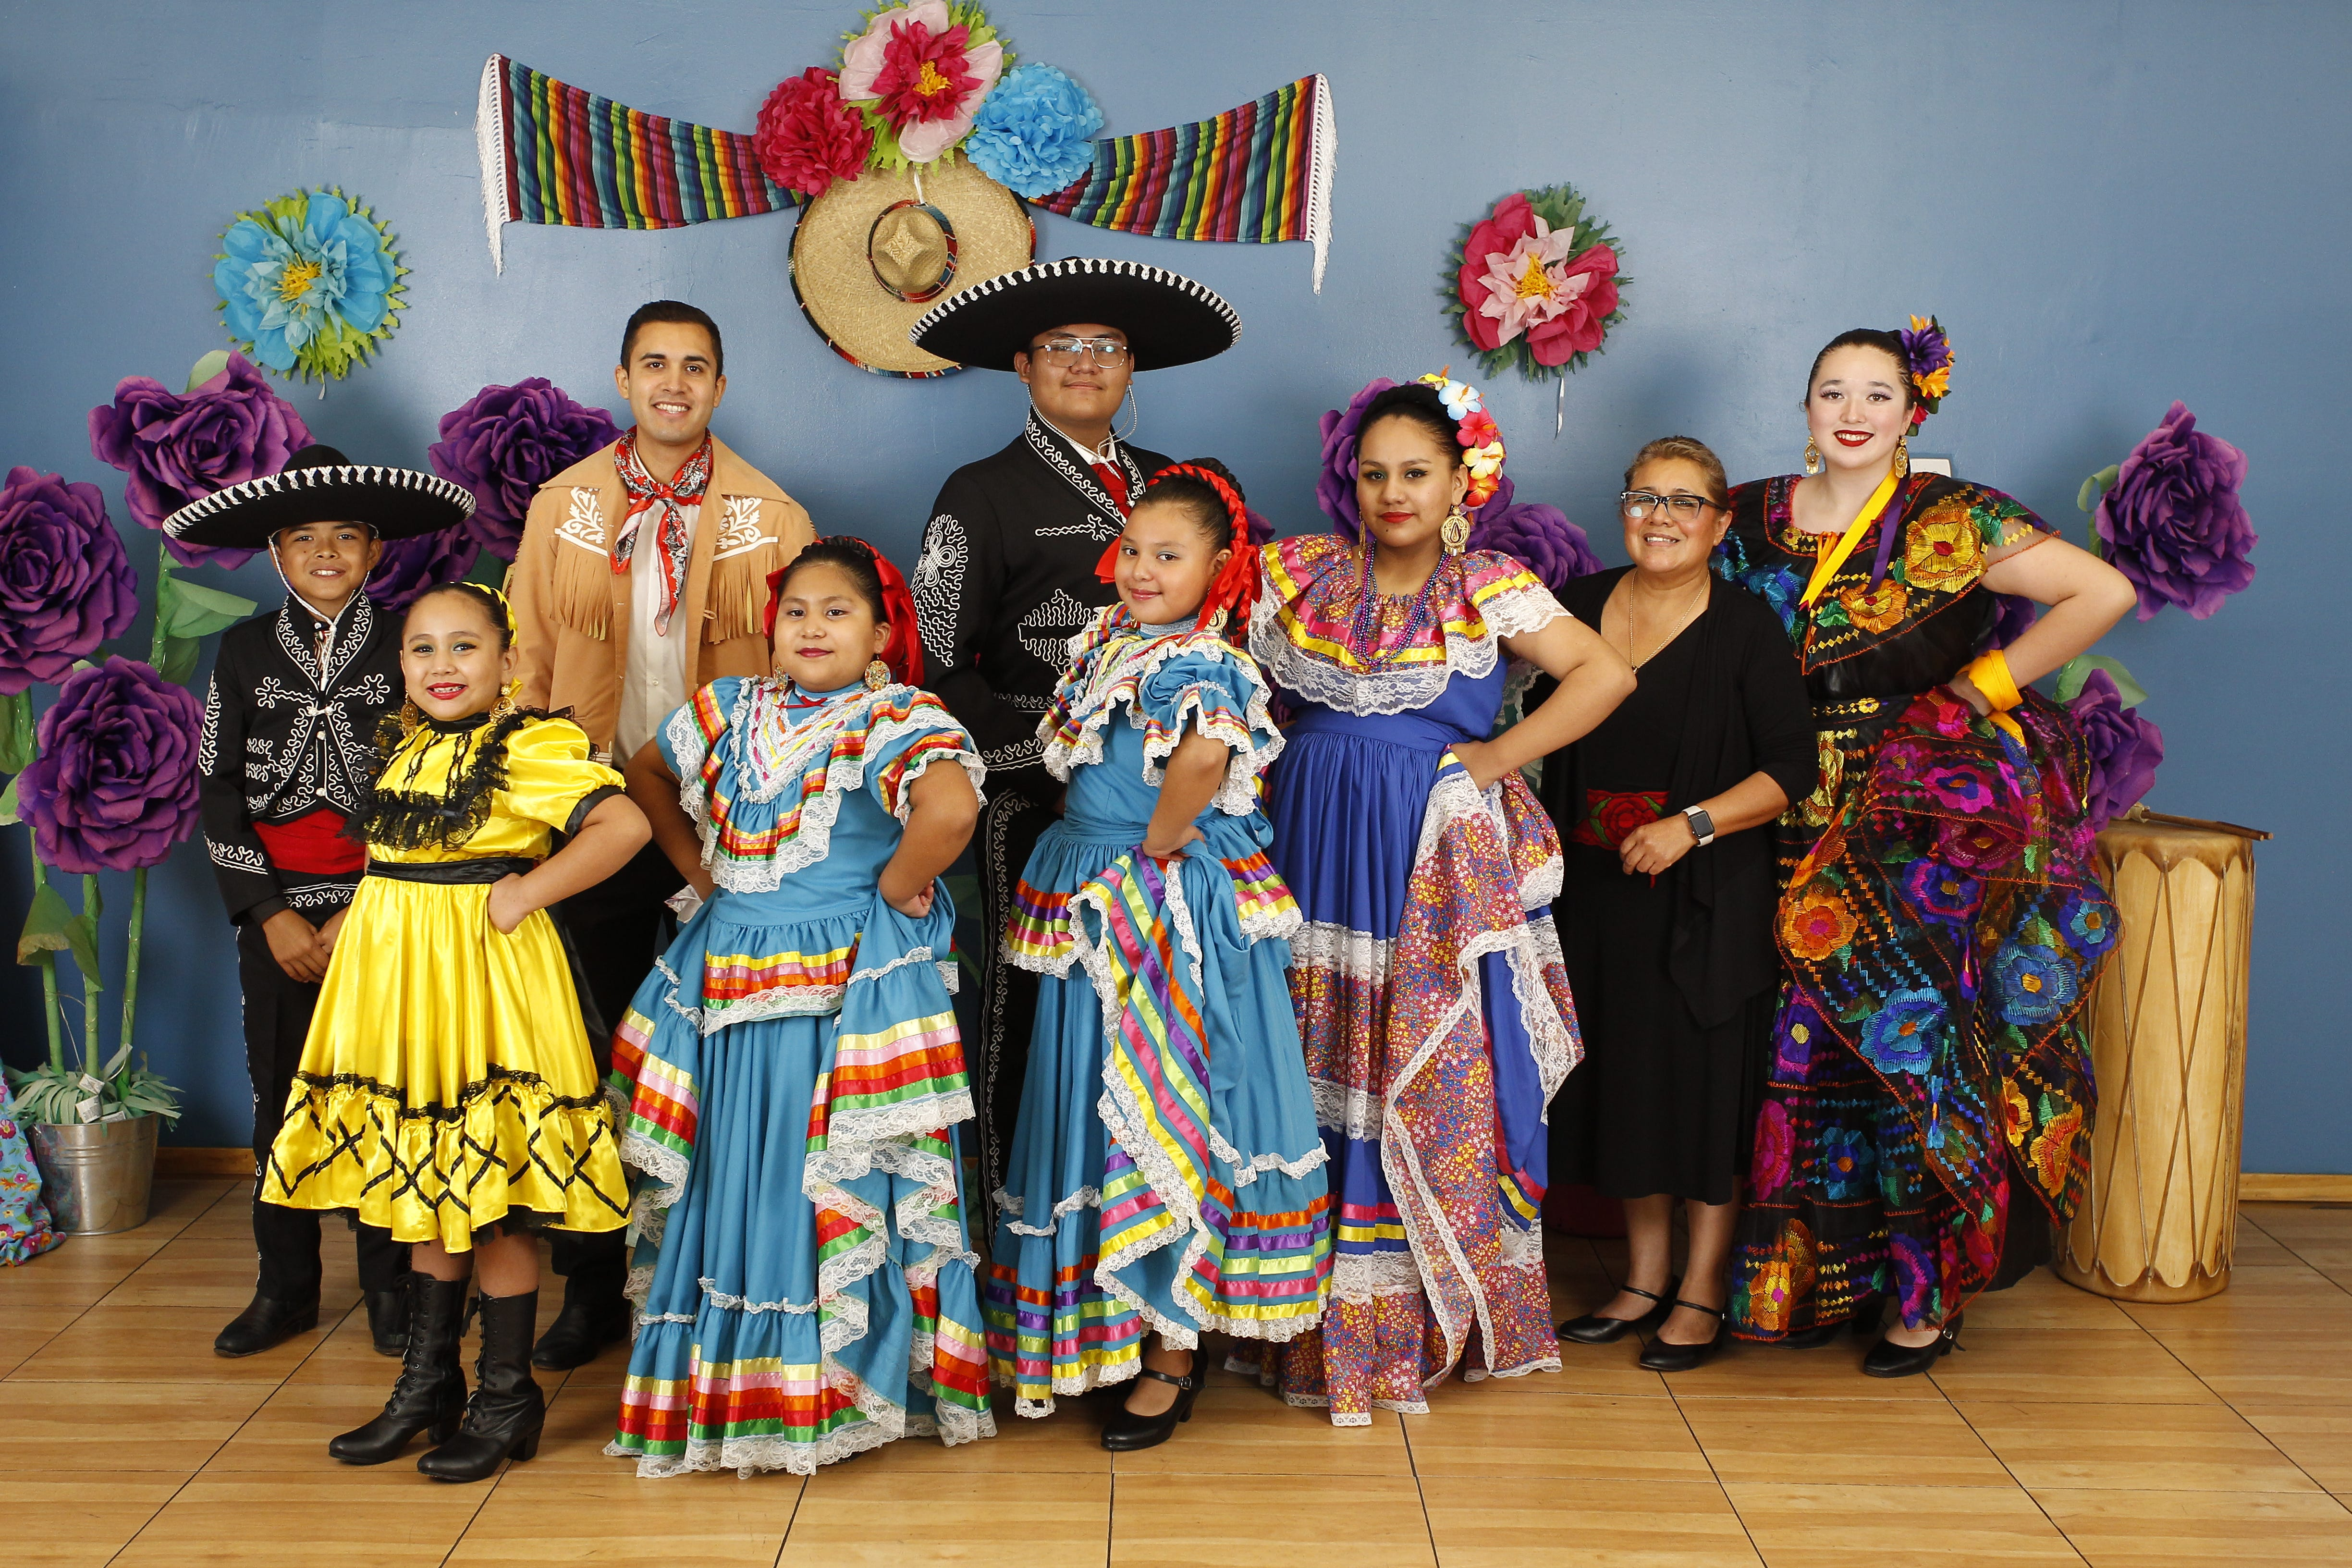 Ollin Yoliztli Dance Academy in Phoenix seeks to maintain Mexican history and traditions alive through dance.